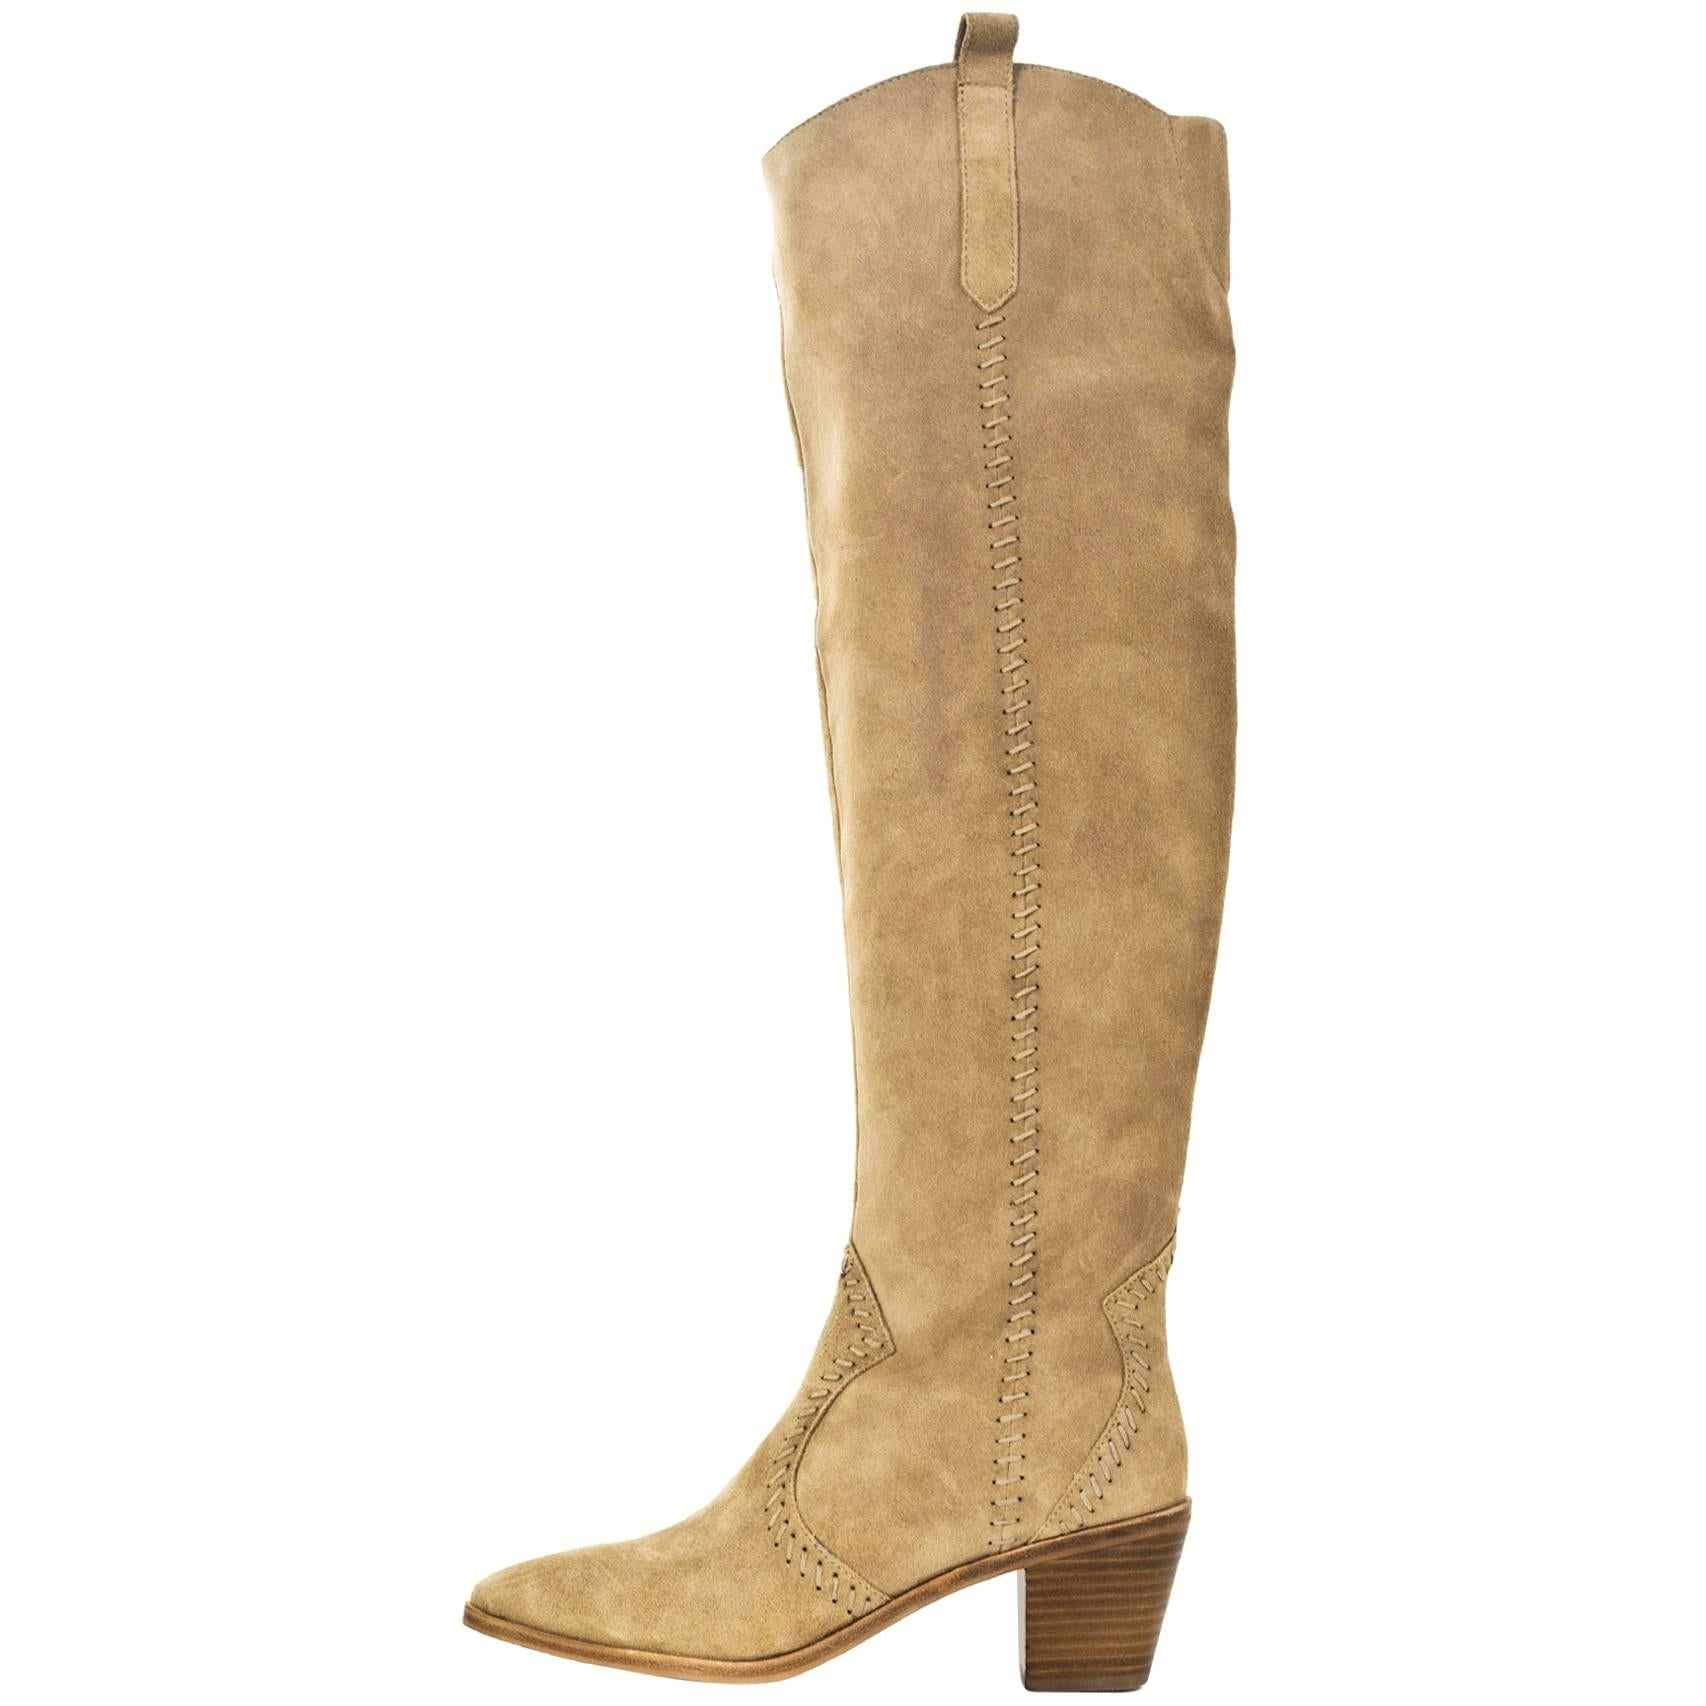 Rebecca Minkoff Beige Lizelle Over The Knee Boots Sz 9M